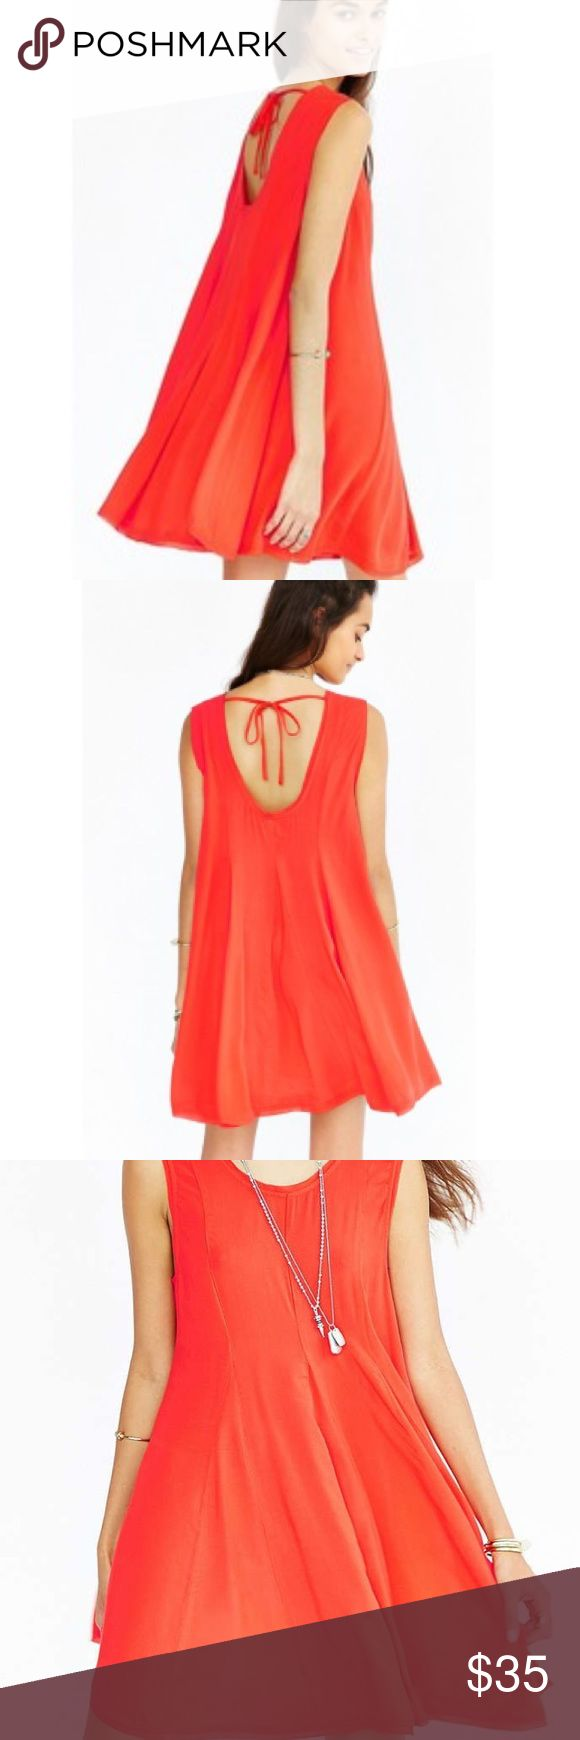 "•Ecote• NWT Urban Outfitters Clary Godet Dress Ecote NeT Urban Outfitters Clary Trapeze Coral Dress. Back Tie, Pull Over Style. When Laying Flat: Bust Measures Approximately 16.5"" Across, Length 32"" Urban Outfitters Dresses"